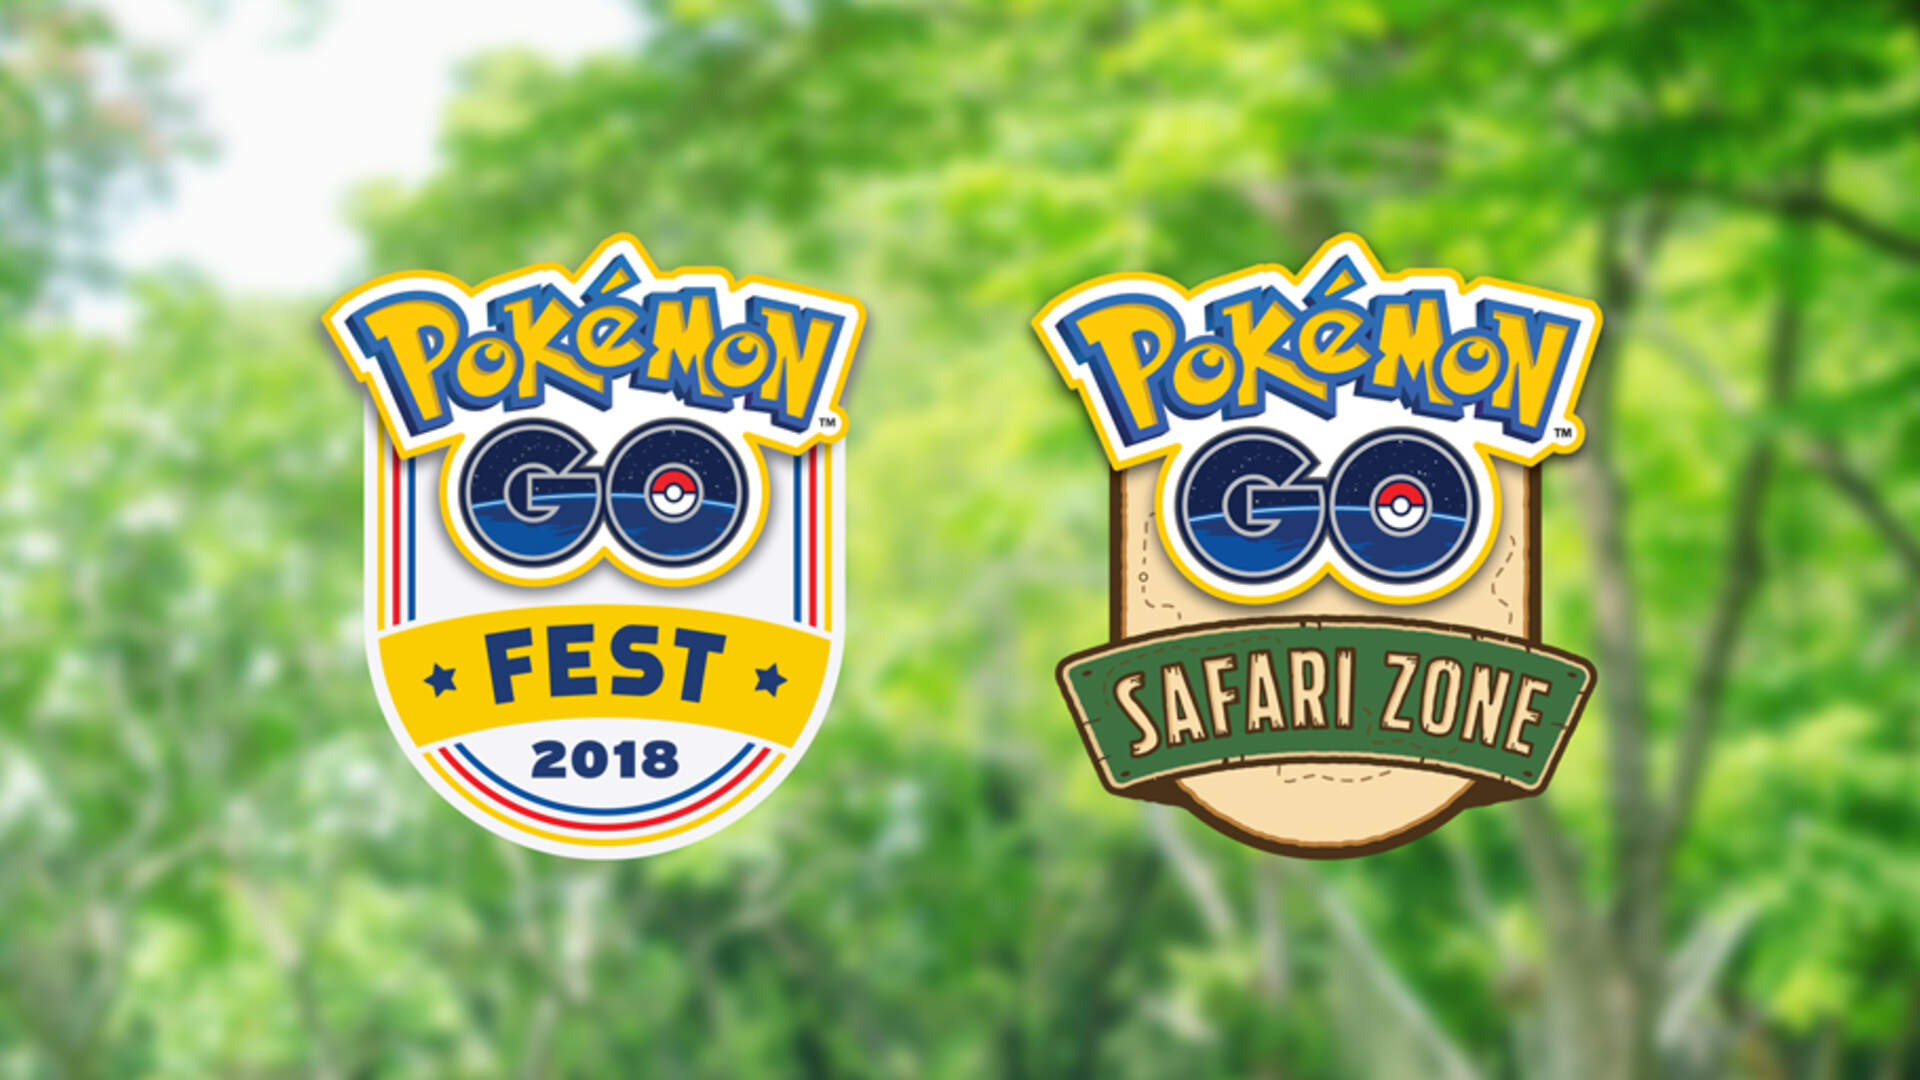 Pokemon GO Fest Global Challenge - Start Date, Shiny Plusle, Shiny Minun, Tickets, Alolan Diglett, Alolan Geodude and Shiny Zapdos Day